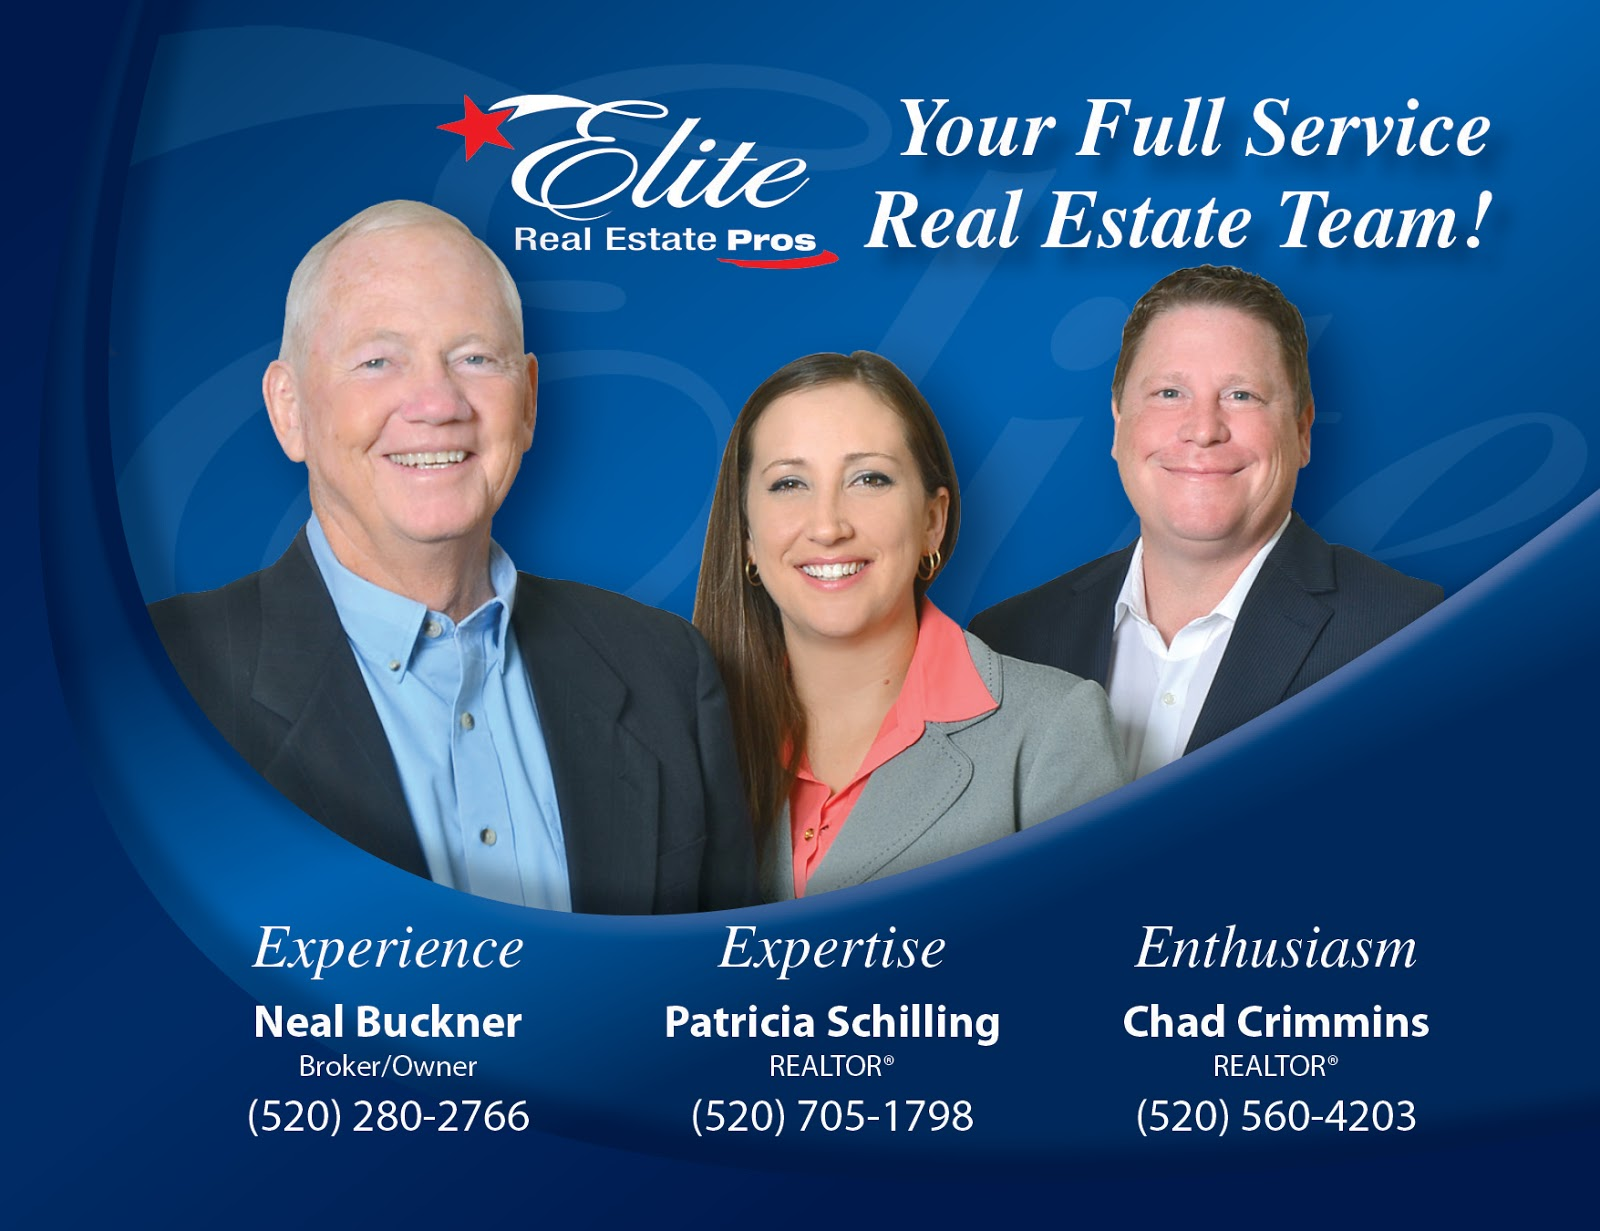 Elite Real Estate Pros